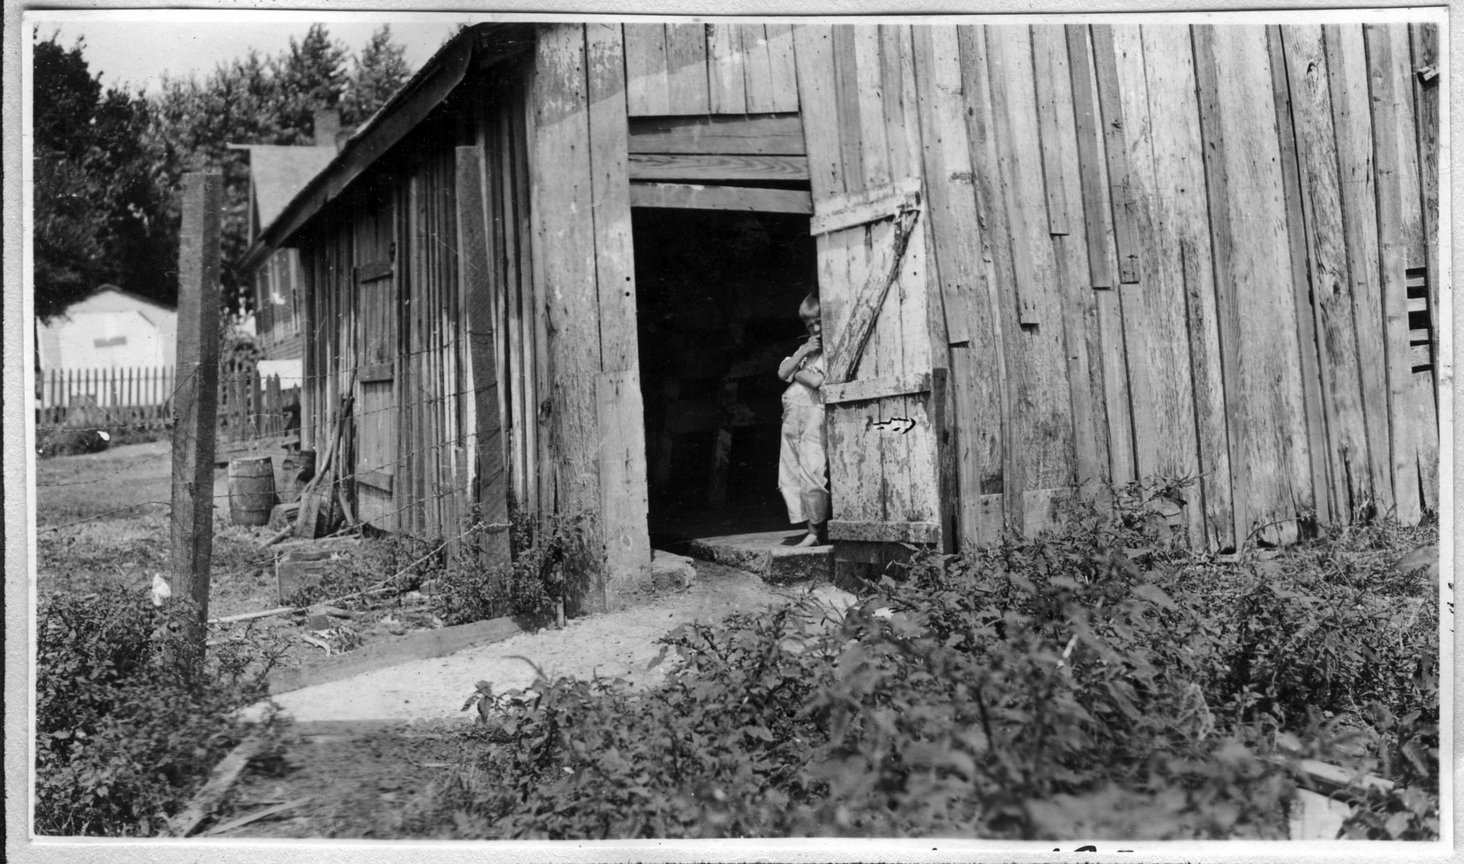 027~T. W. Belote Old Barn Aug 1920.jpg